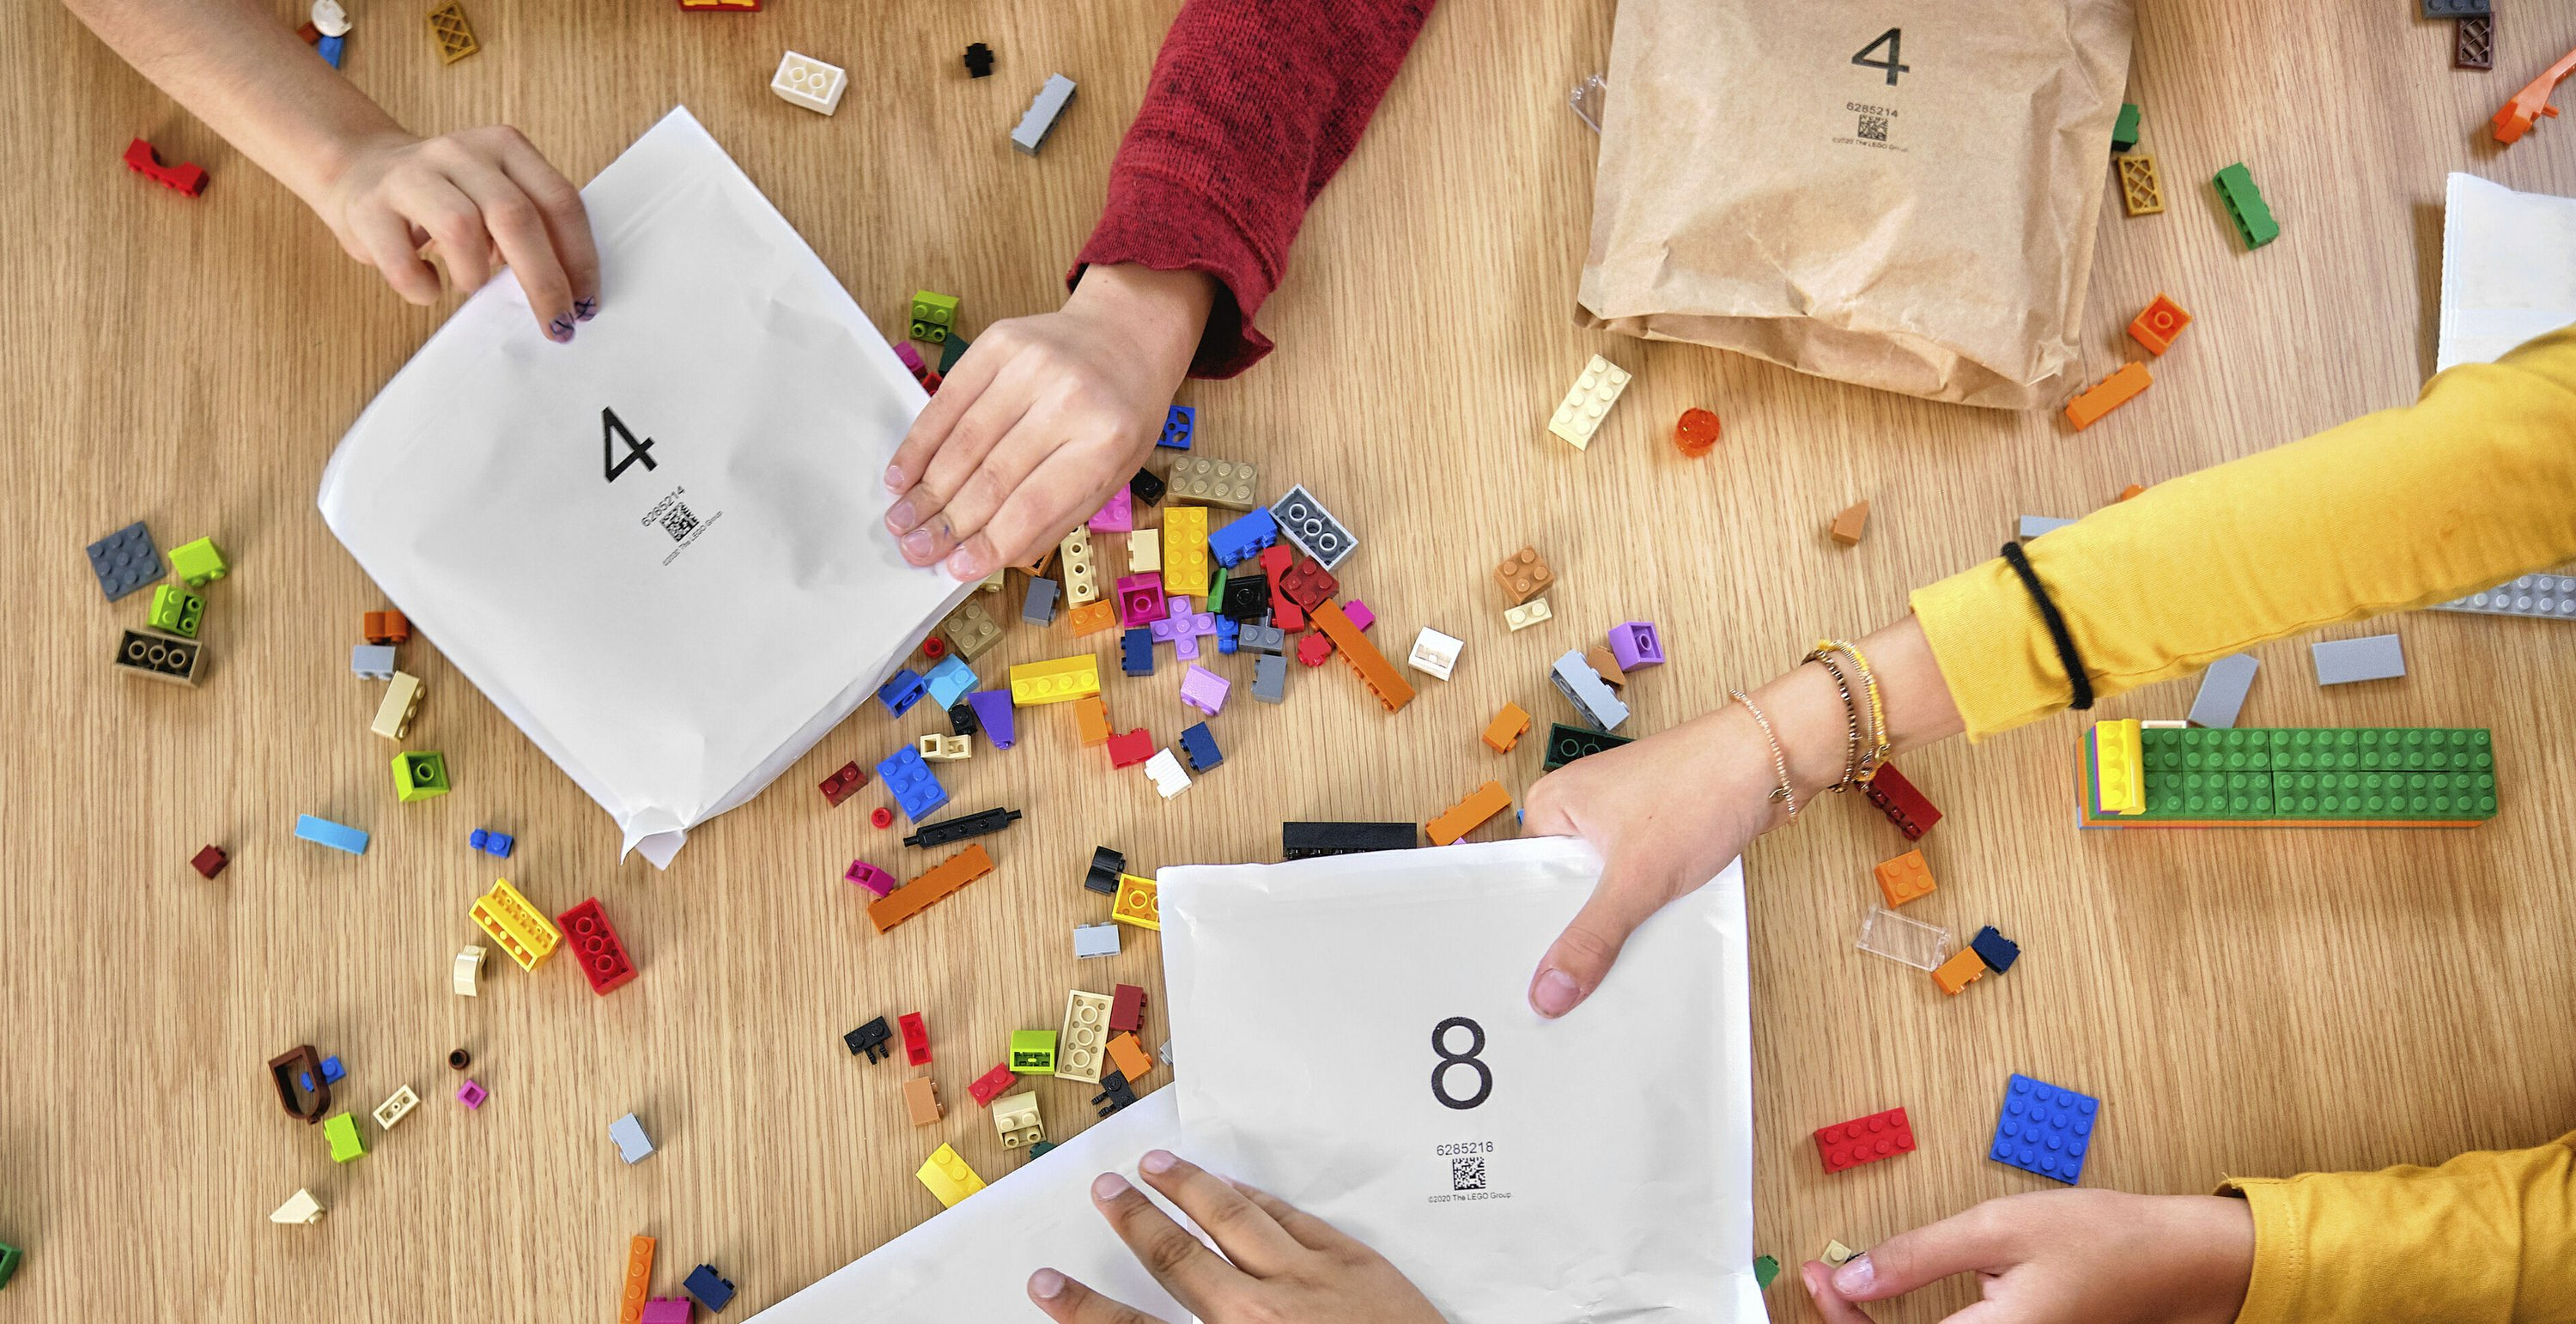 Lego to ditch plastic bags for paper ones in its boxed sets  image